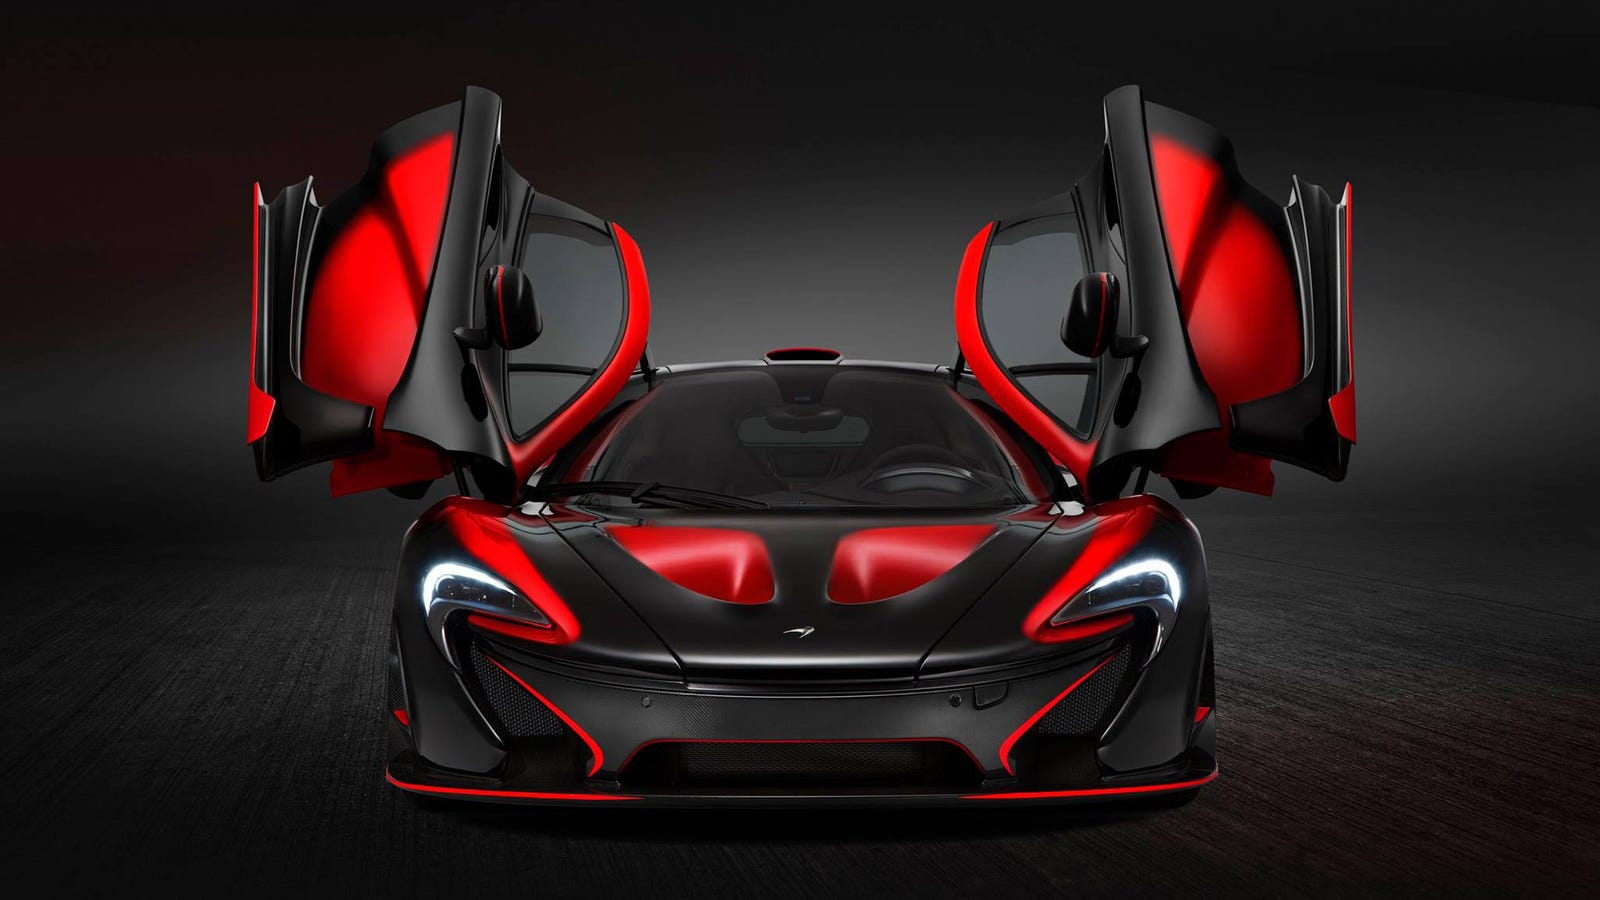 Red And Black Car Wallpapers: This Has To Be The Craziest McLaren P1 Yet